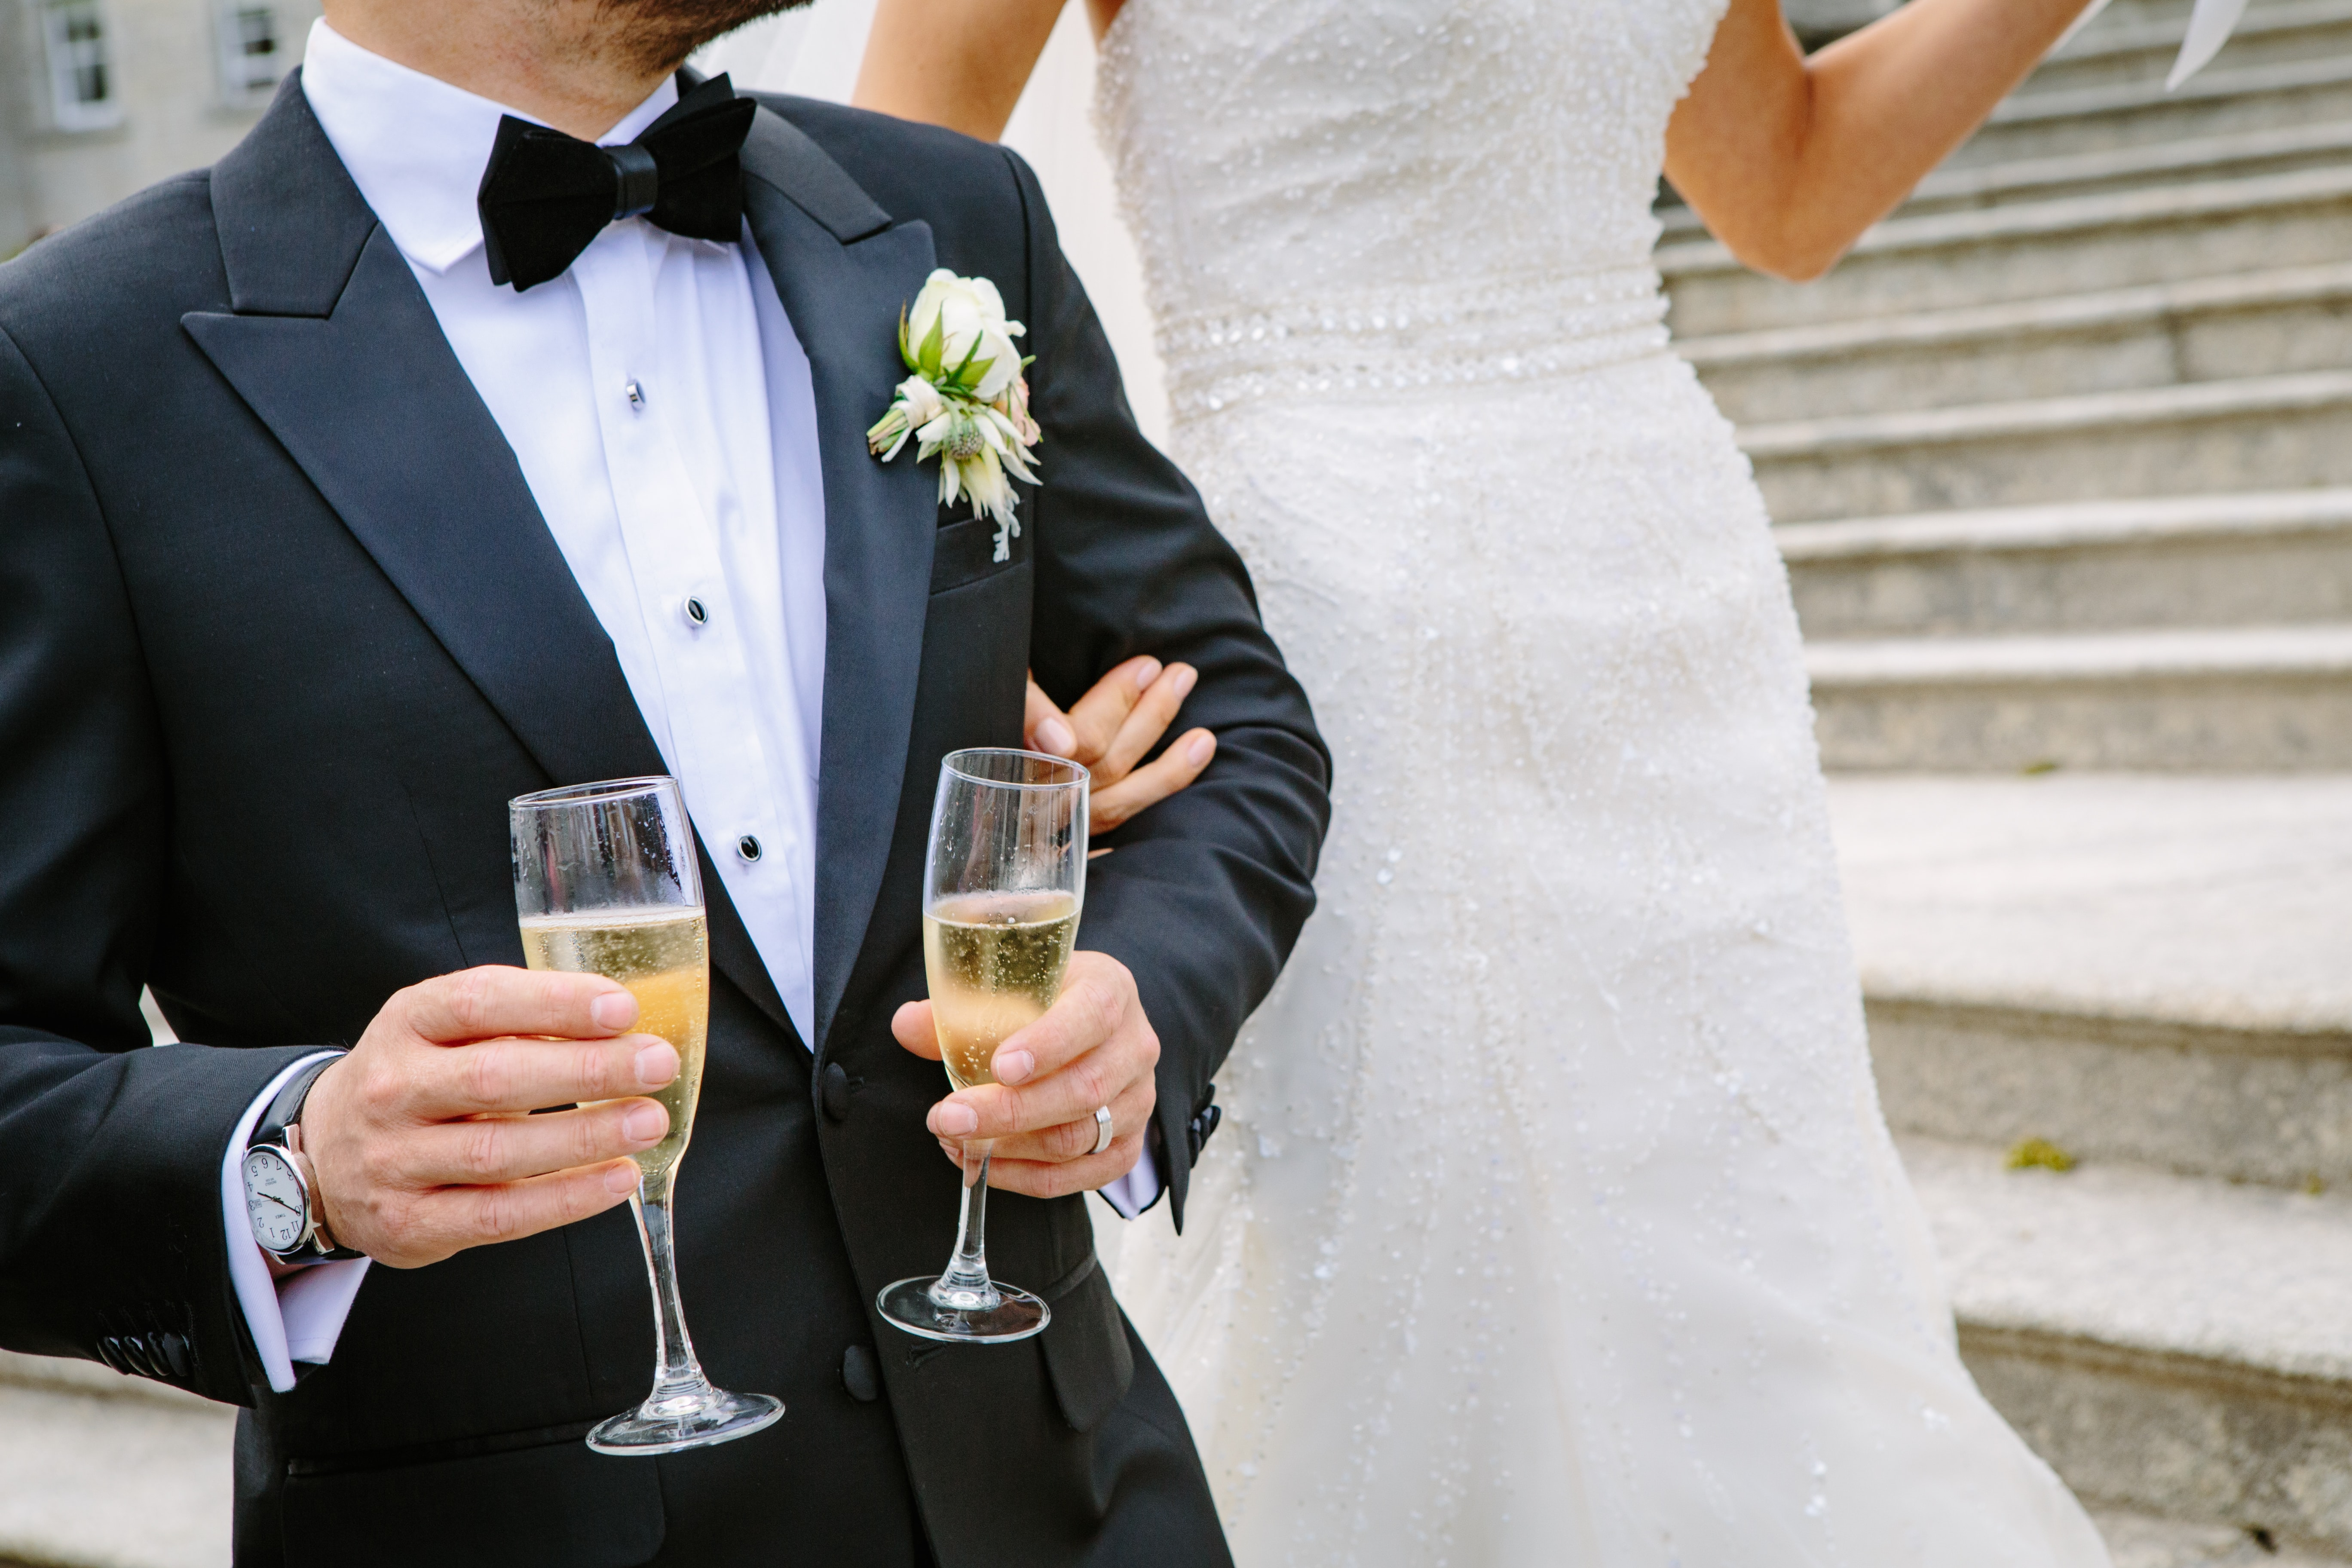 A groom holding two champagne glasses next to a bride in her wedding dress